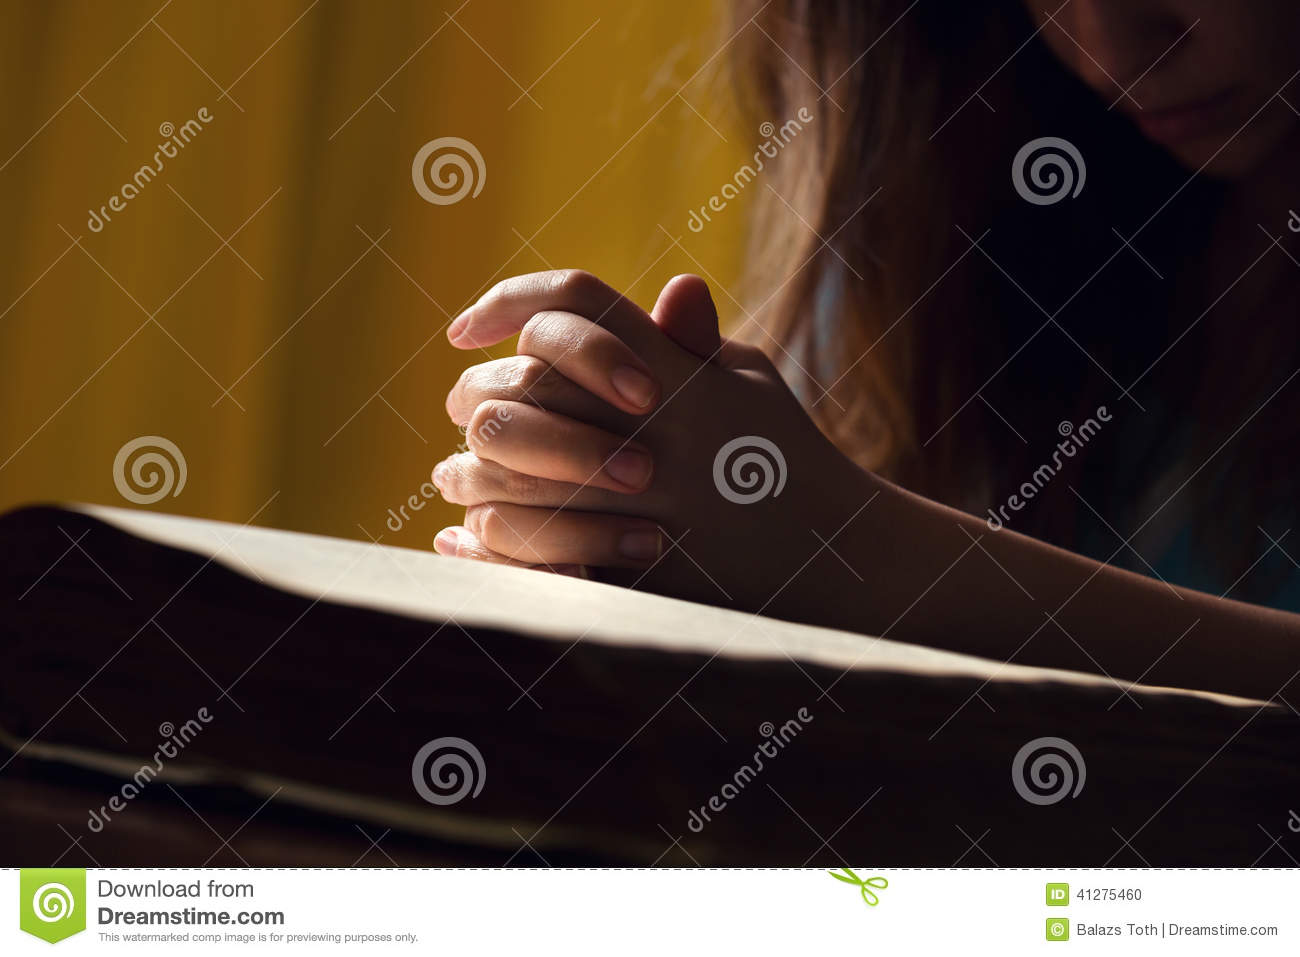 Girl Praying With Hands On Bible Stock Photo - Image: 41275460